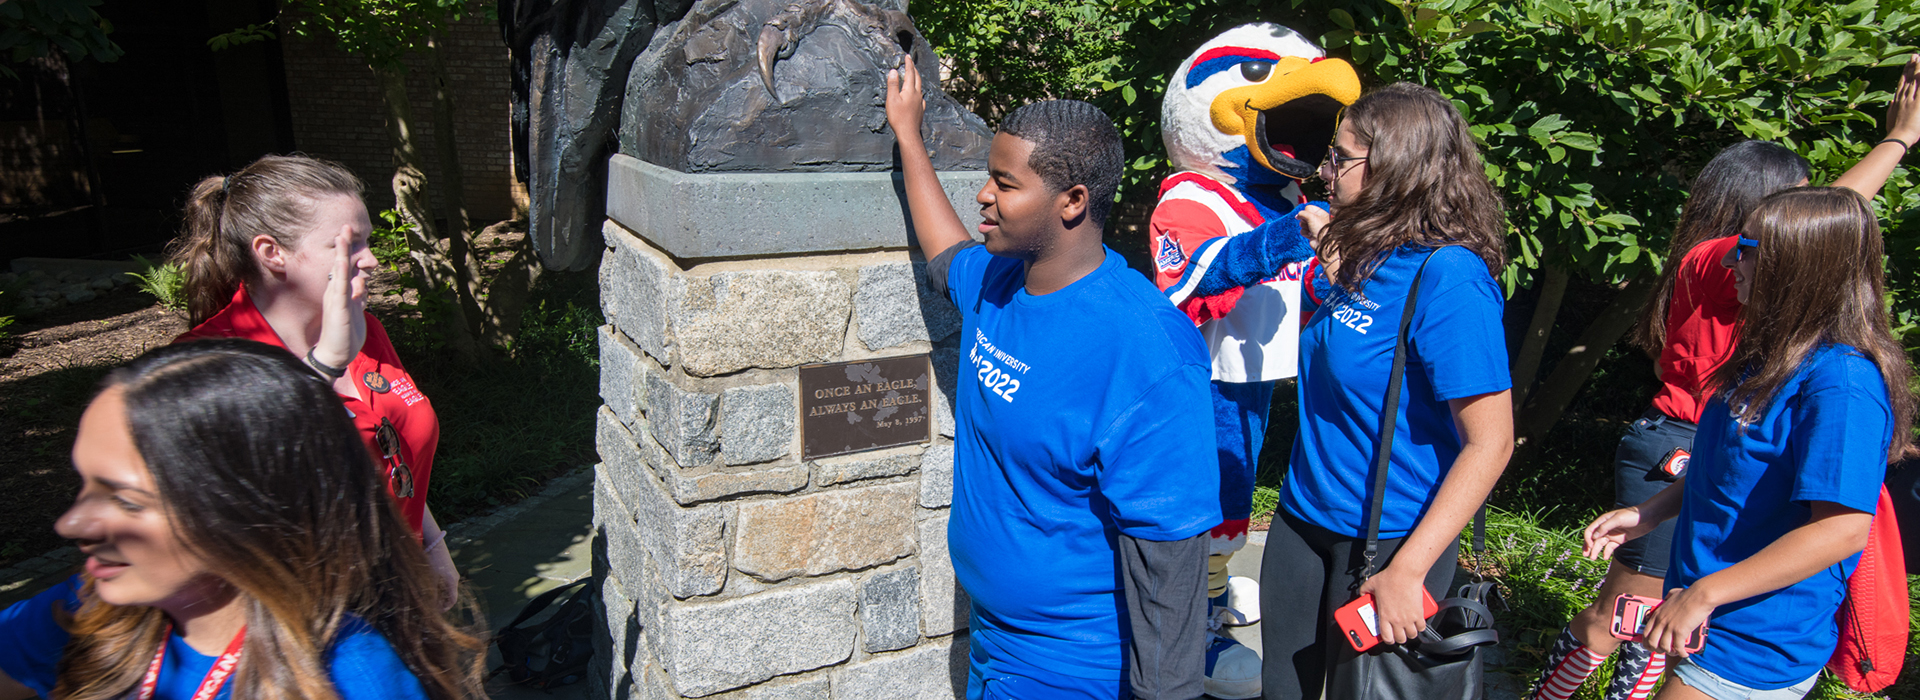 New students rub the talon of the eagle statue for good luck... during commencement, they'll do the same!